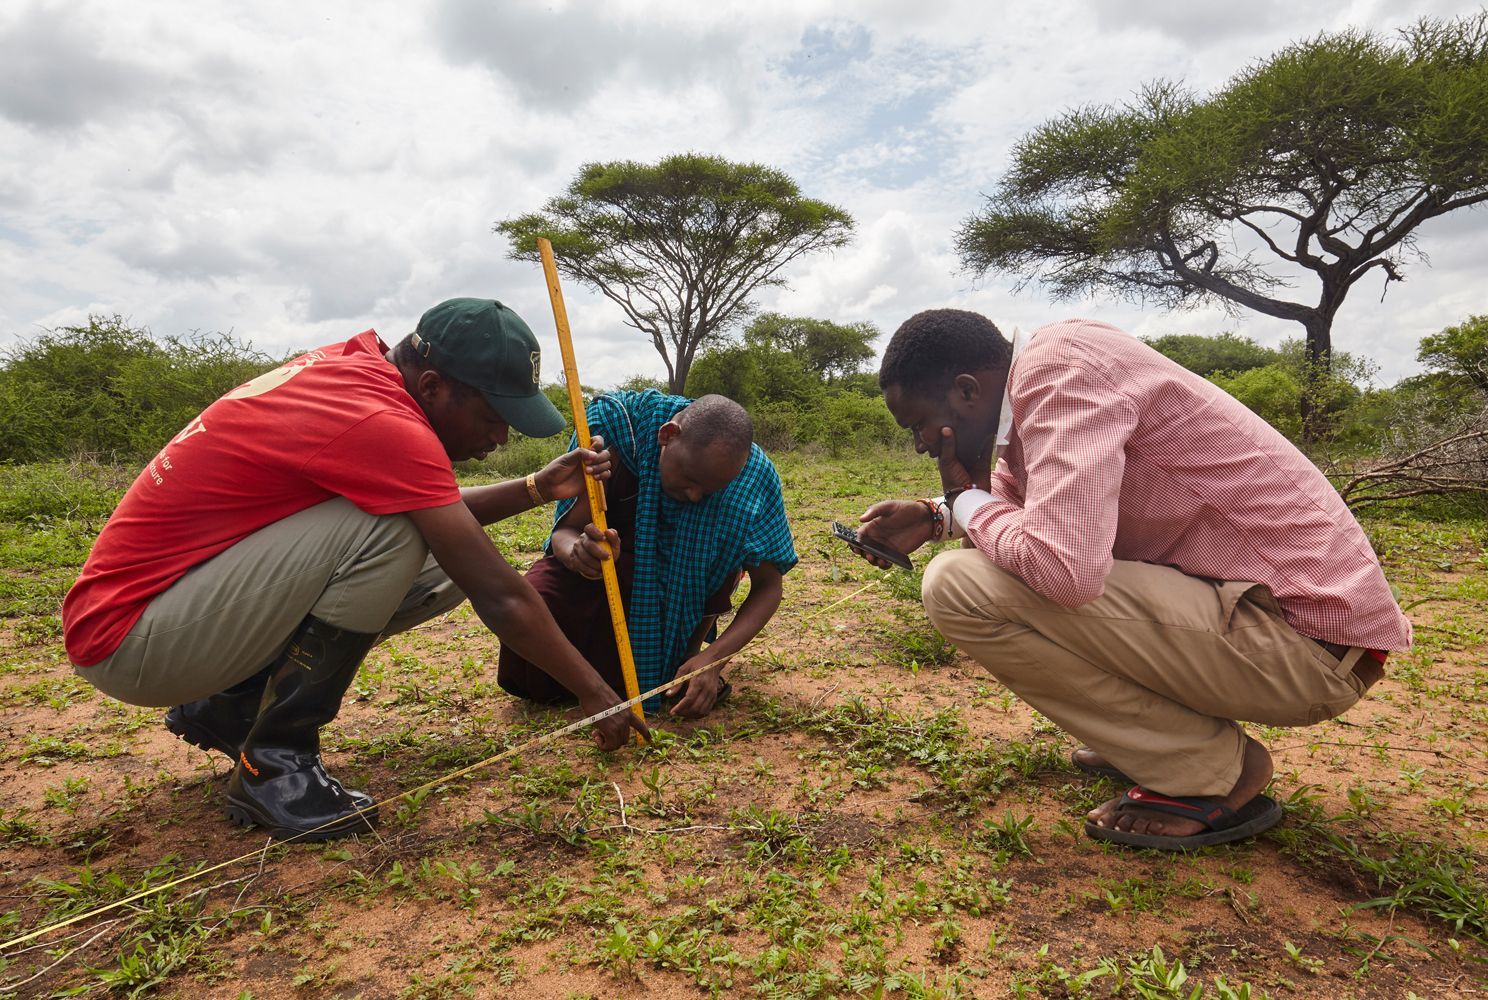 Community rangeland monitors collect data as part of the Sustainable Rangelands Initiative